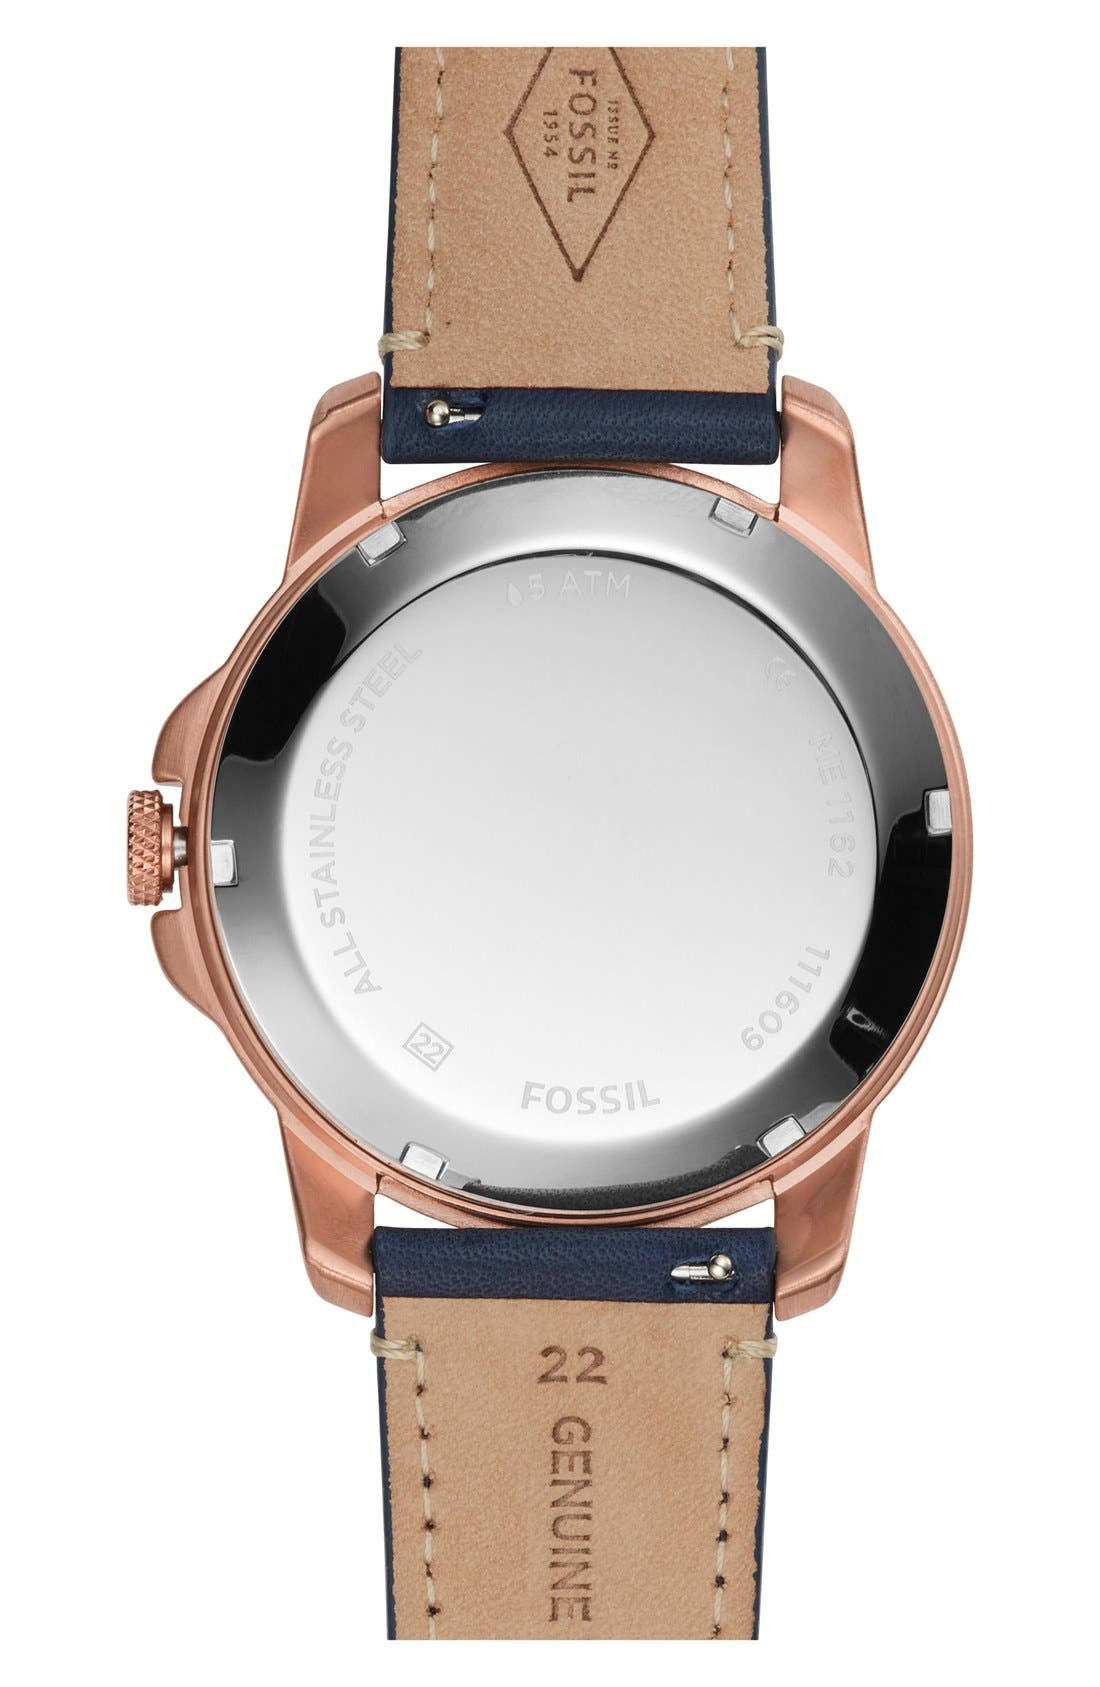 FOSSIL, 'Grant' Chronograph Leather Strap Watch, 44mm, Alternate thumbnail 2, color, NAVY/ ROSE GOLD